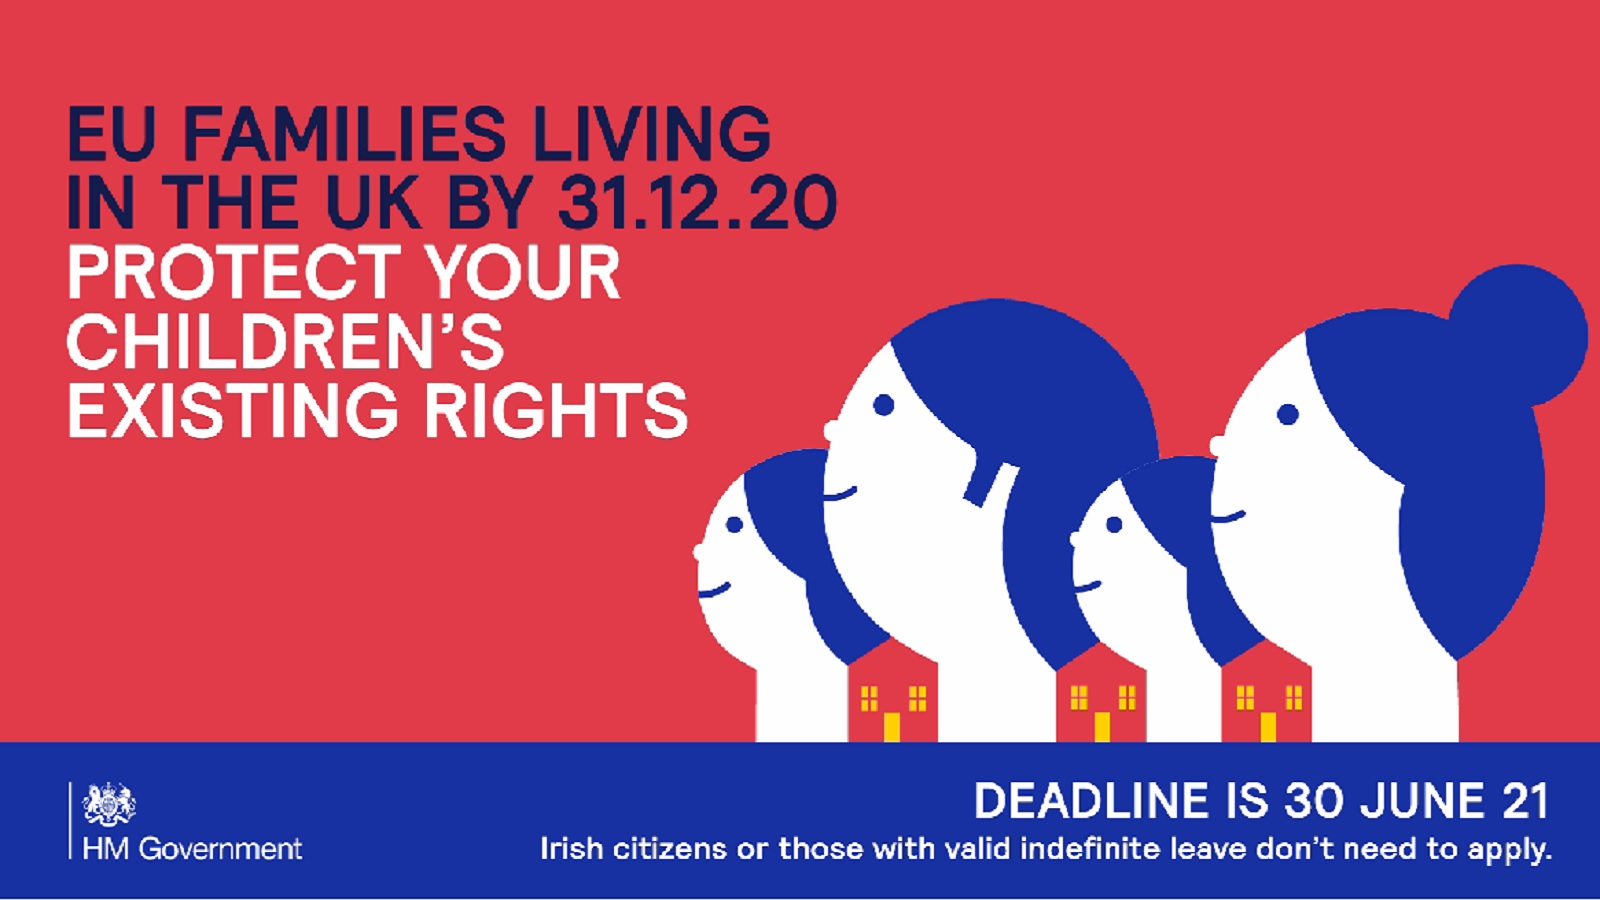 Protect your families rights - EU graphic